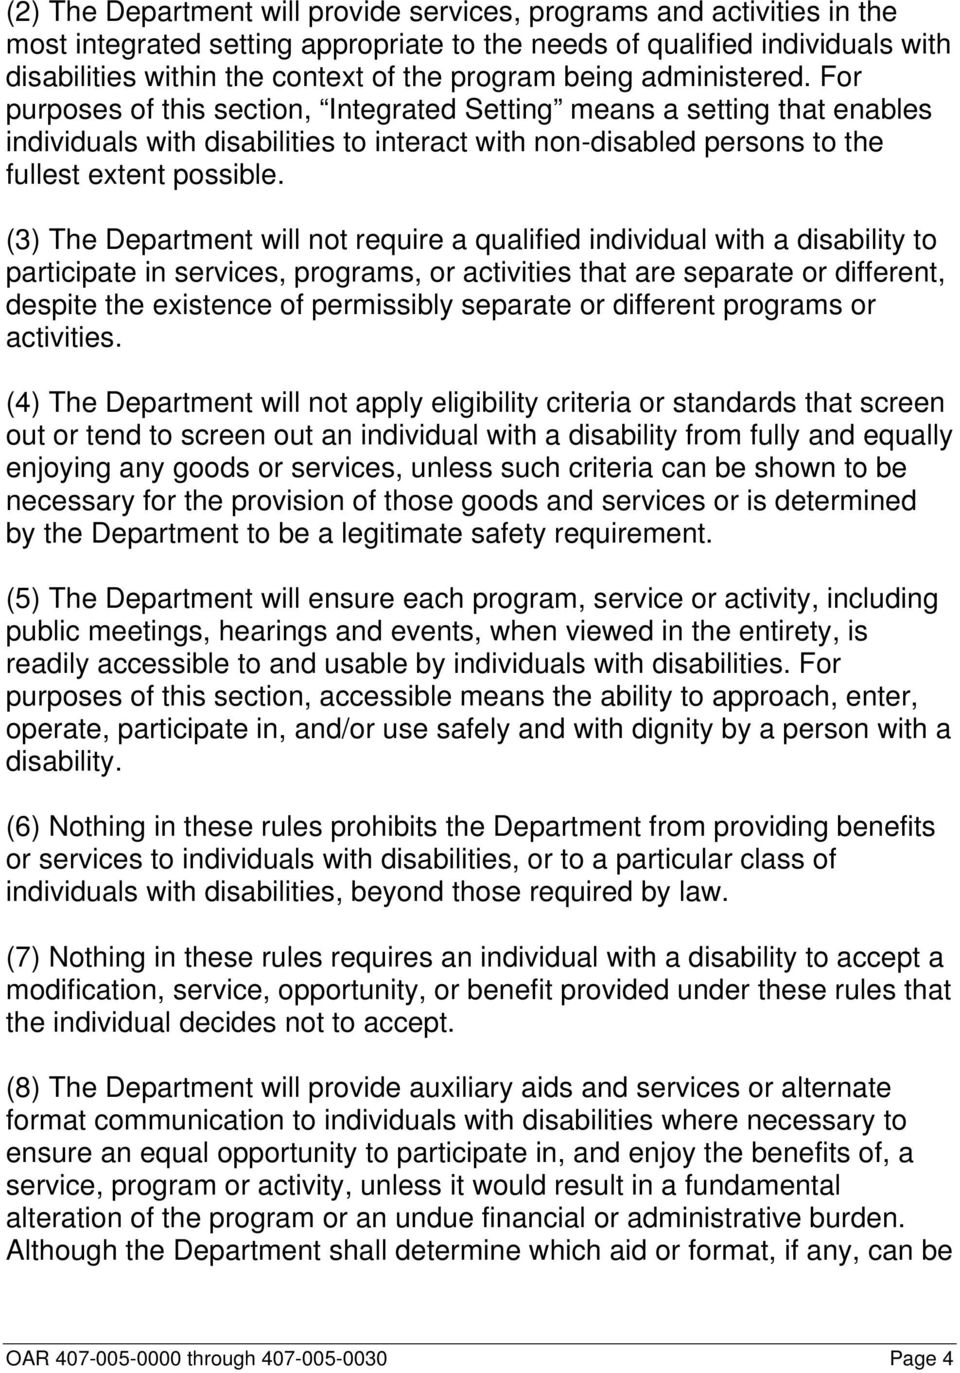 (3) The Department will not require a qualified individual with a disability to participate in services, programs, or activities that are separate or different, despite the existence of permissibly